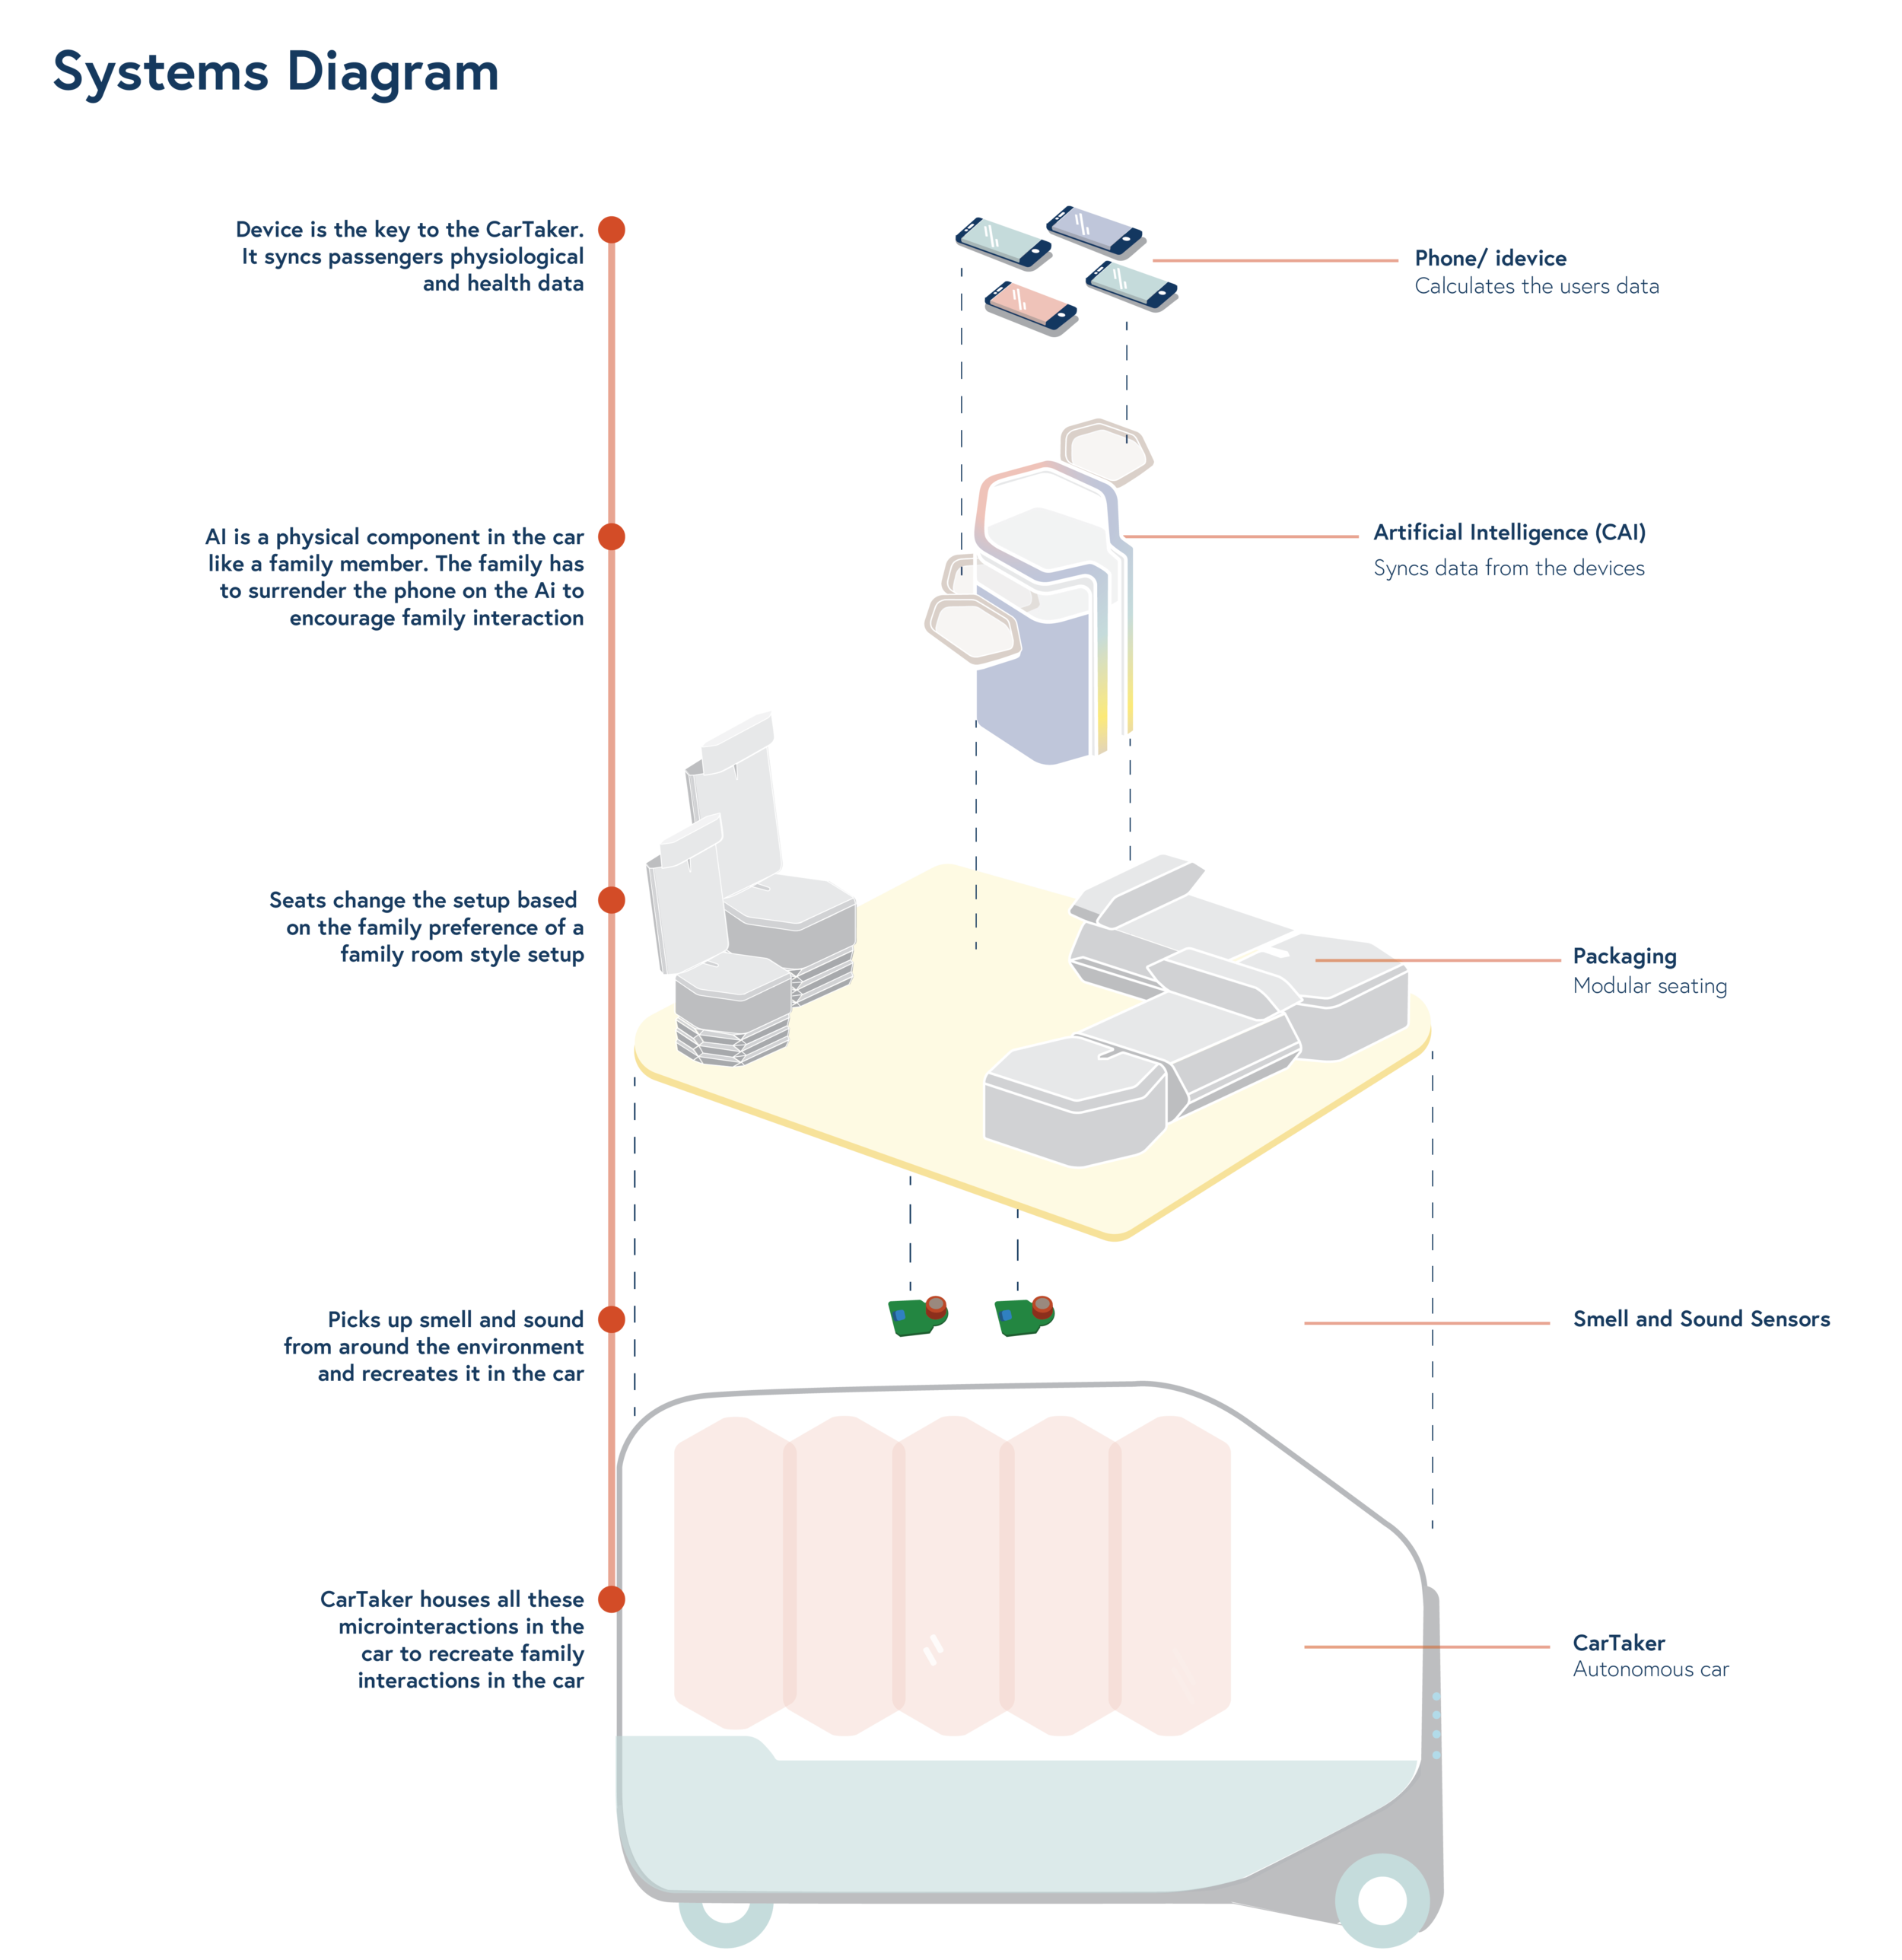 Copy of Systems Diagram